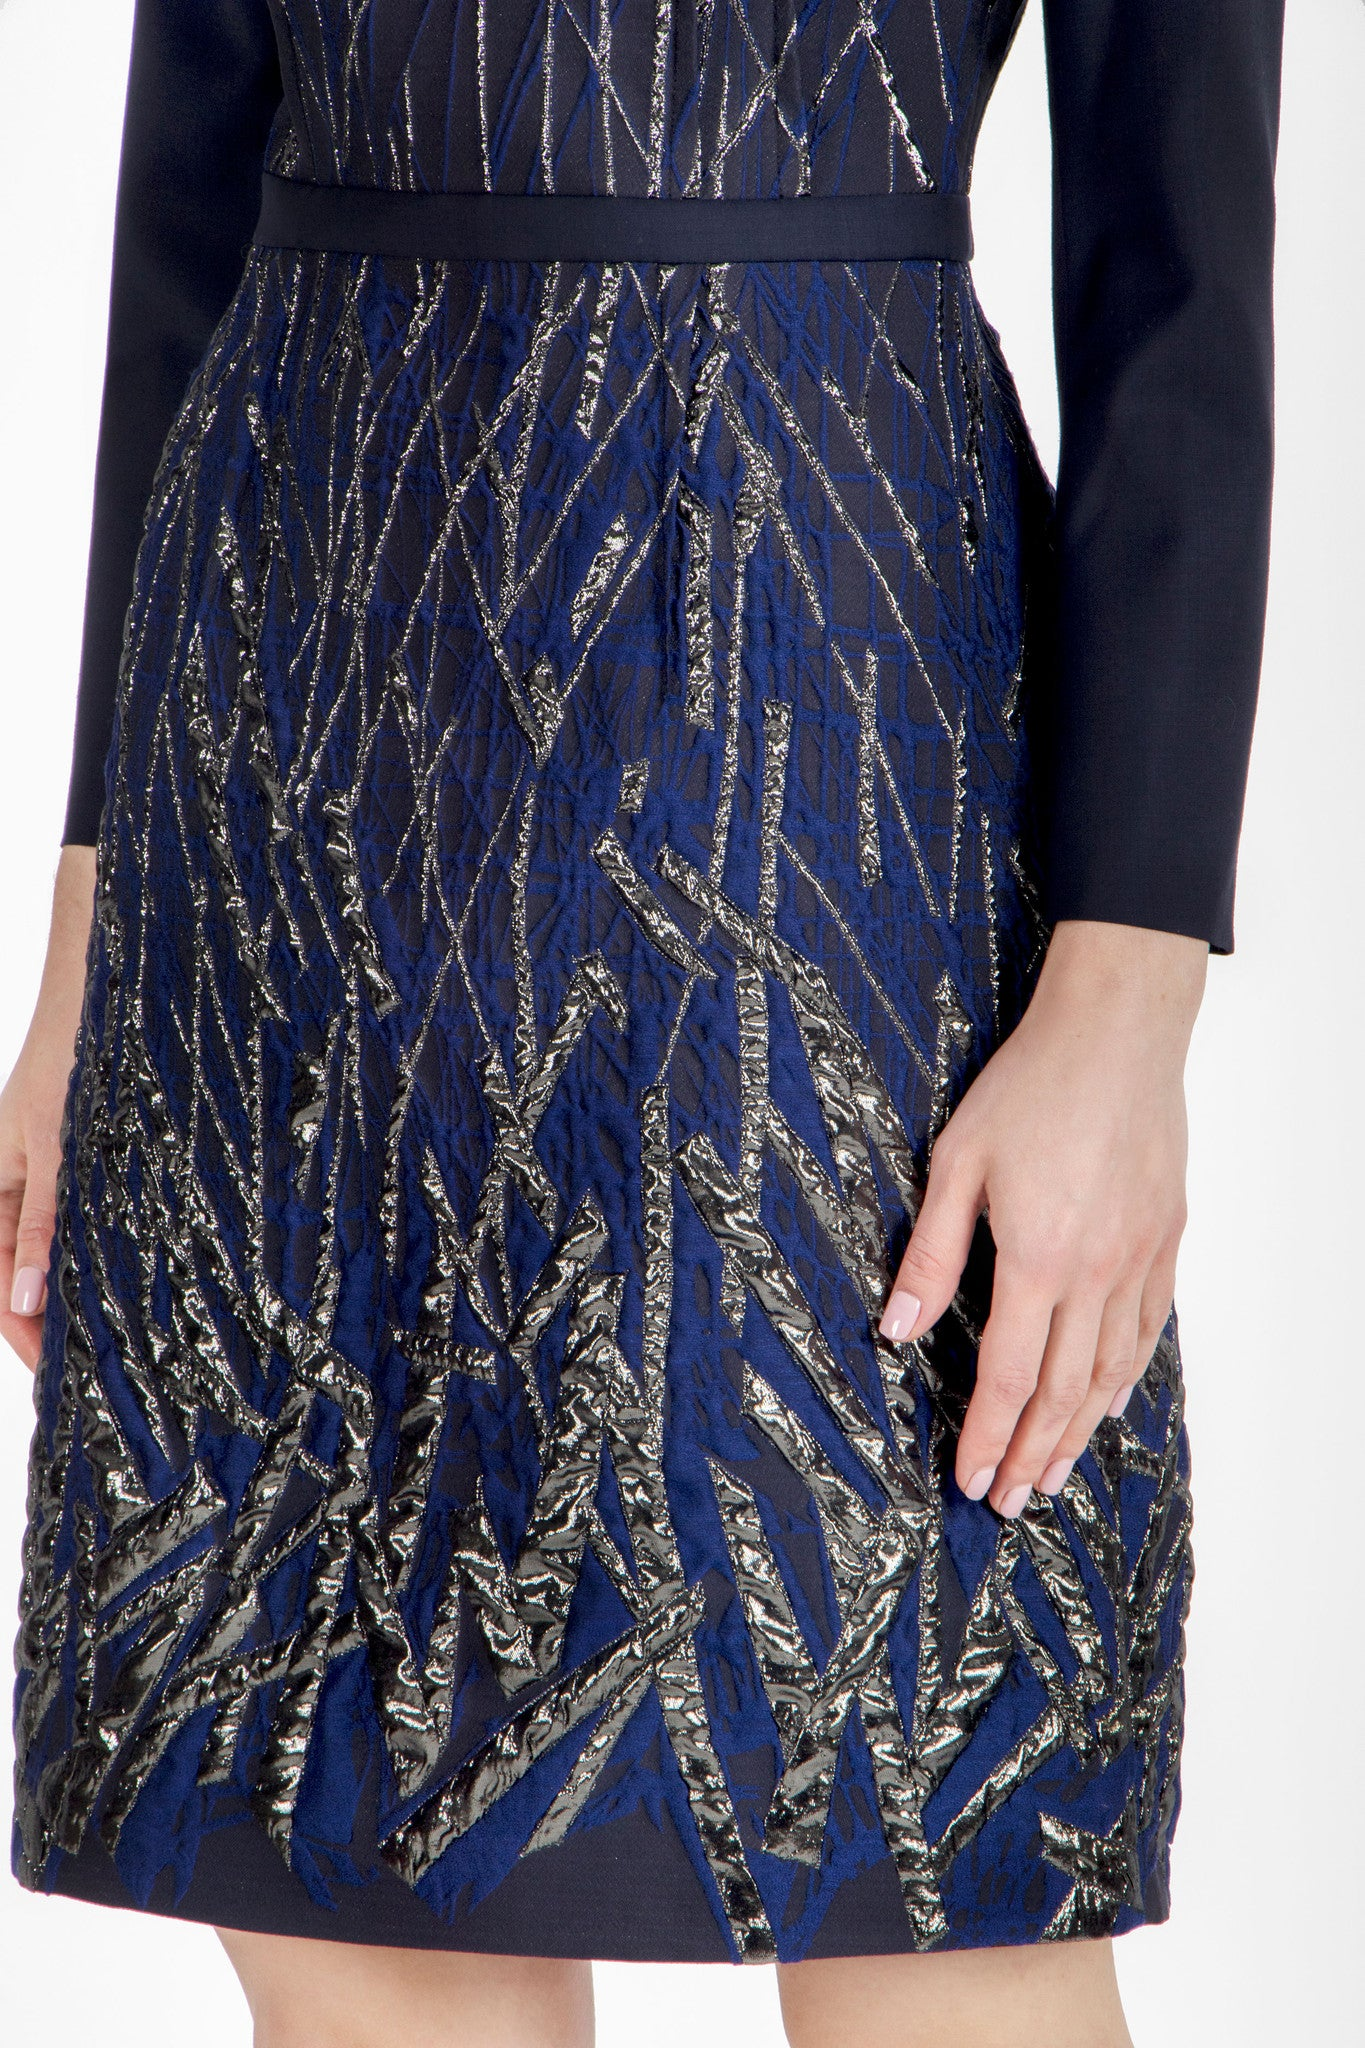 Blue evening dress with metallic details, Dress, FG atelier